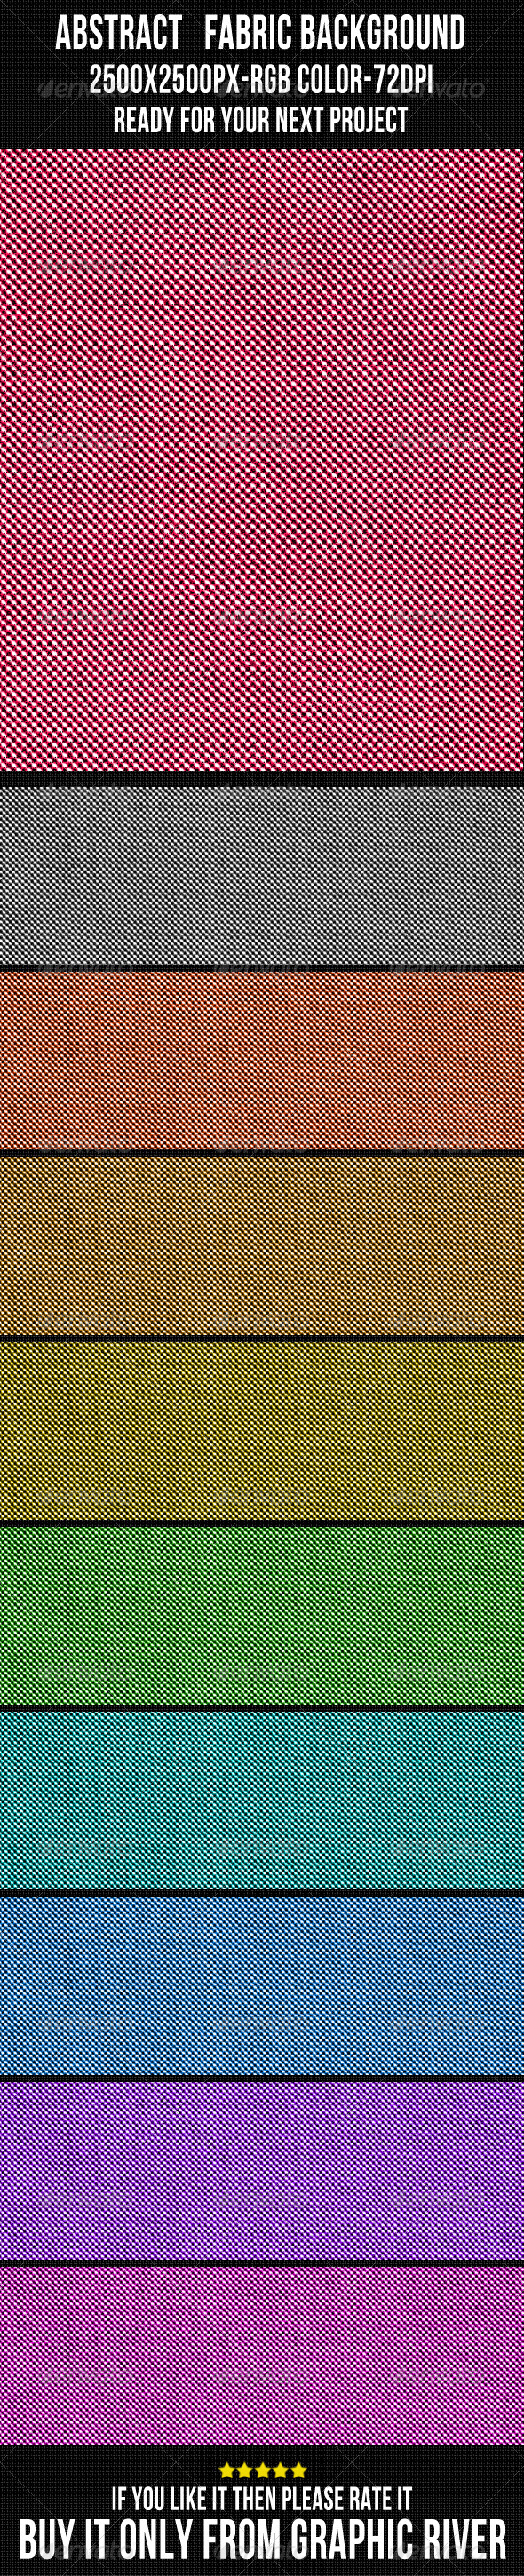 Fabric Background Set 12